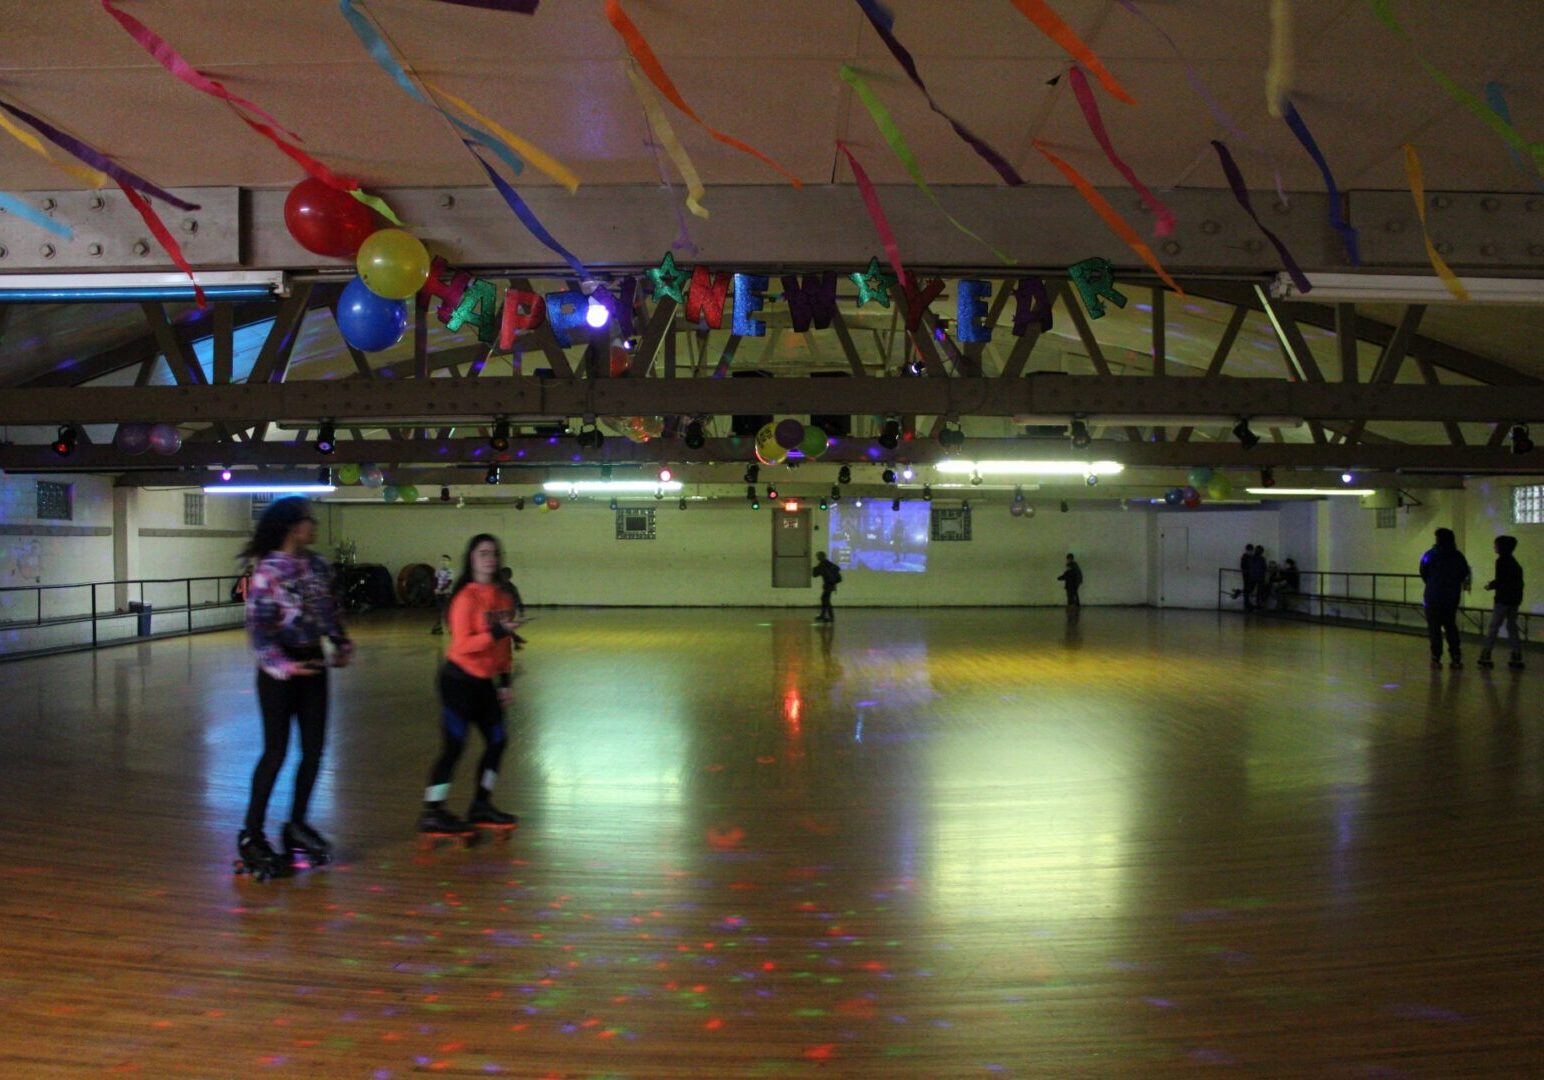 Customers skating on our wooden roller rink